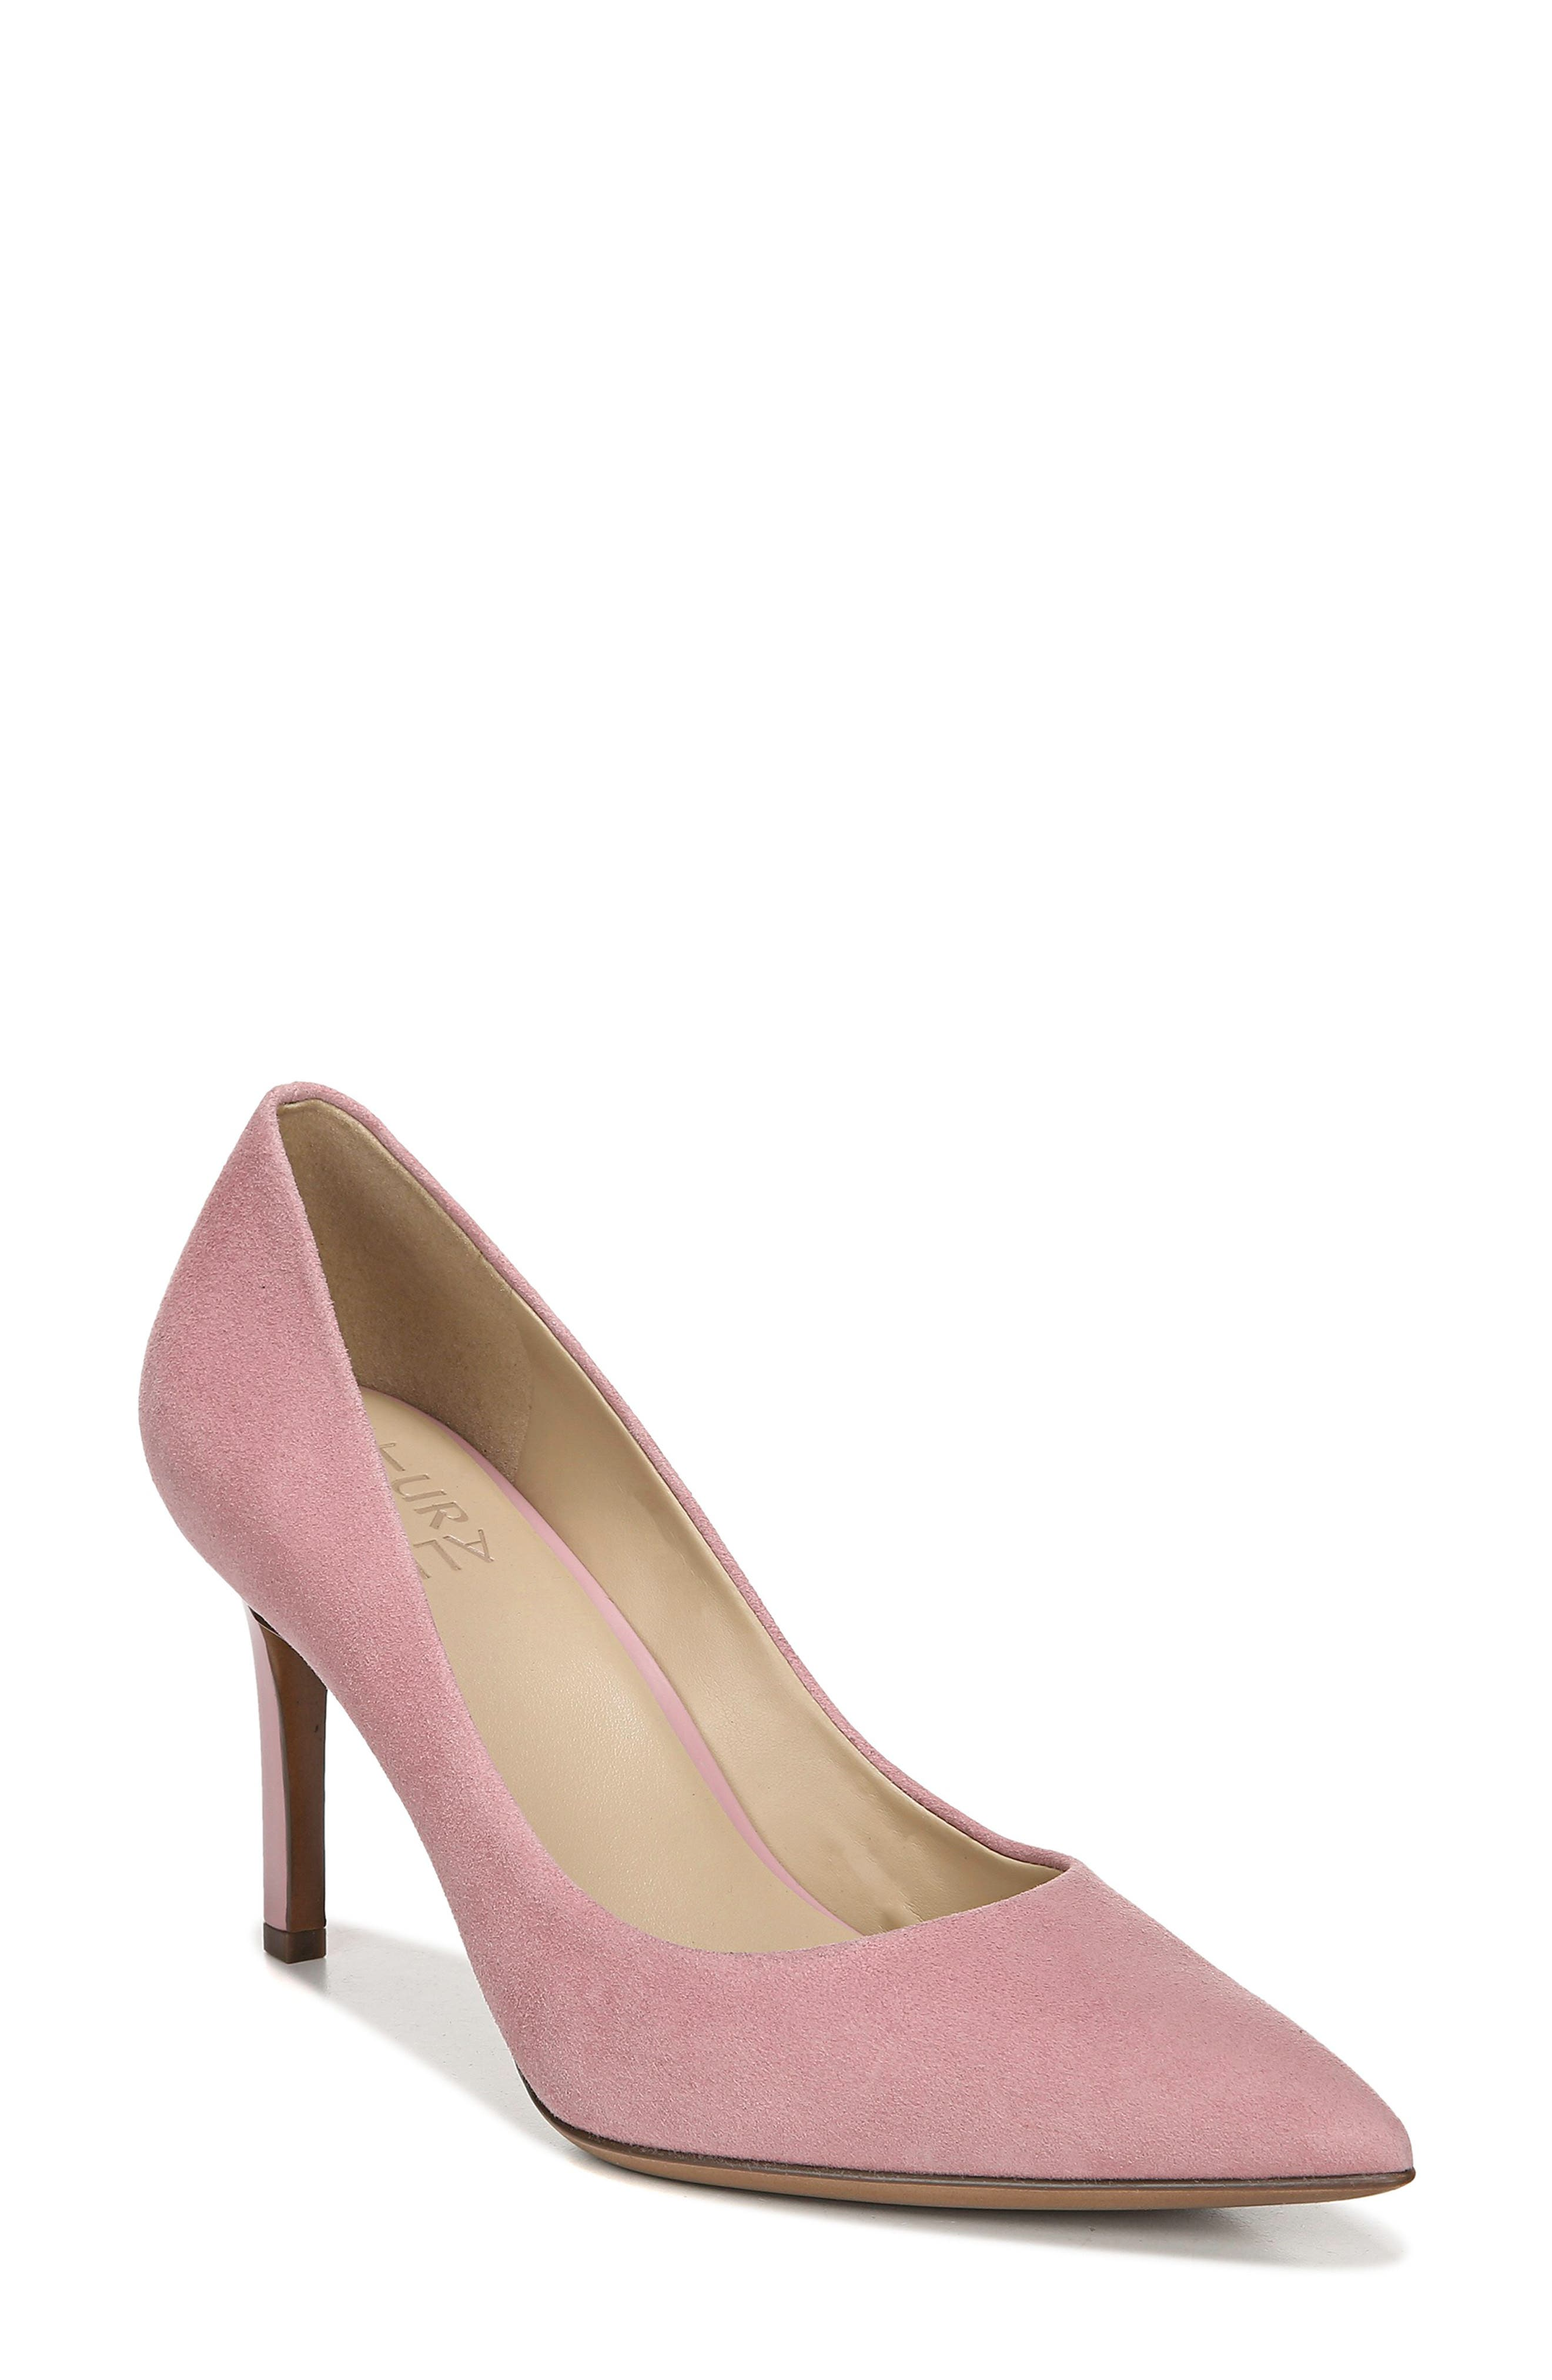 Naturalizer Anna Pump, Pink